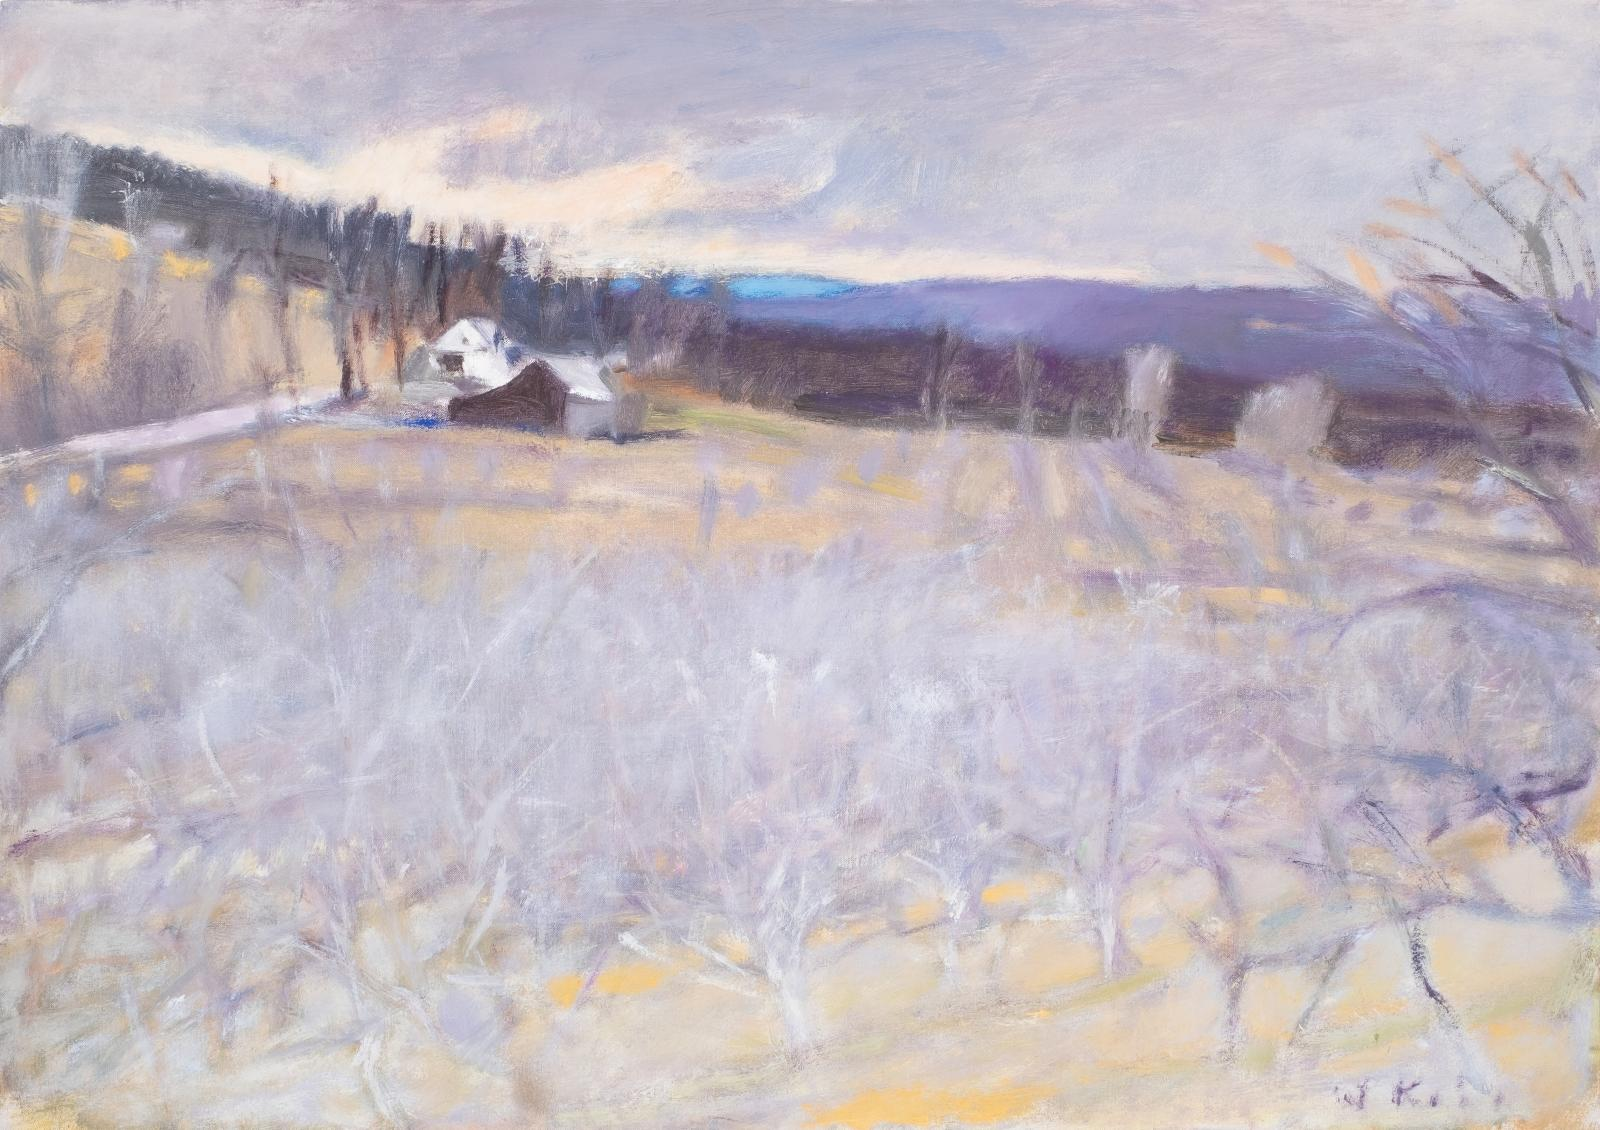 An oil painting of an orchard in winter with a house in the distance, painted in cool tones